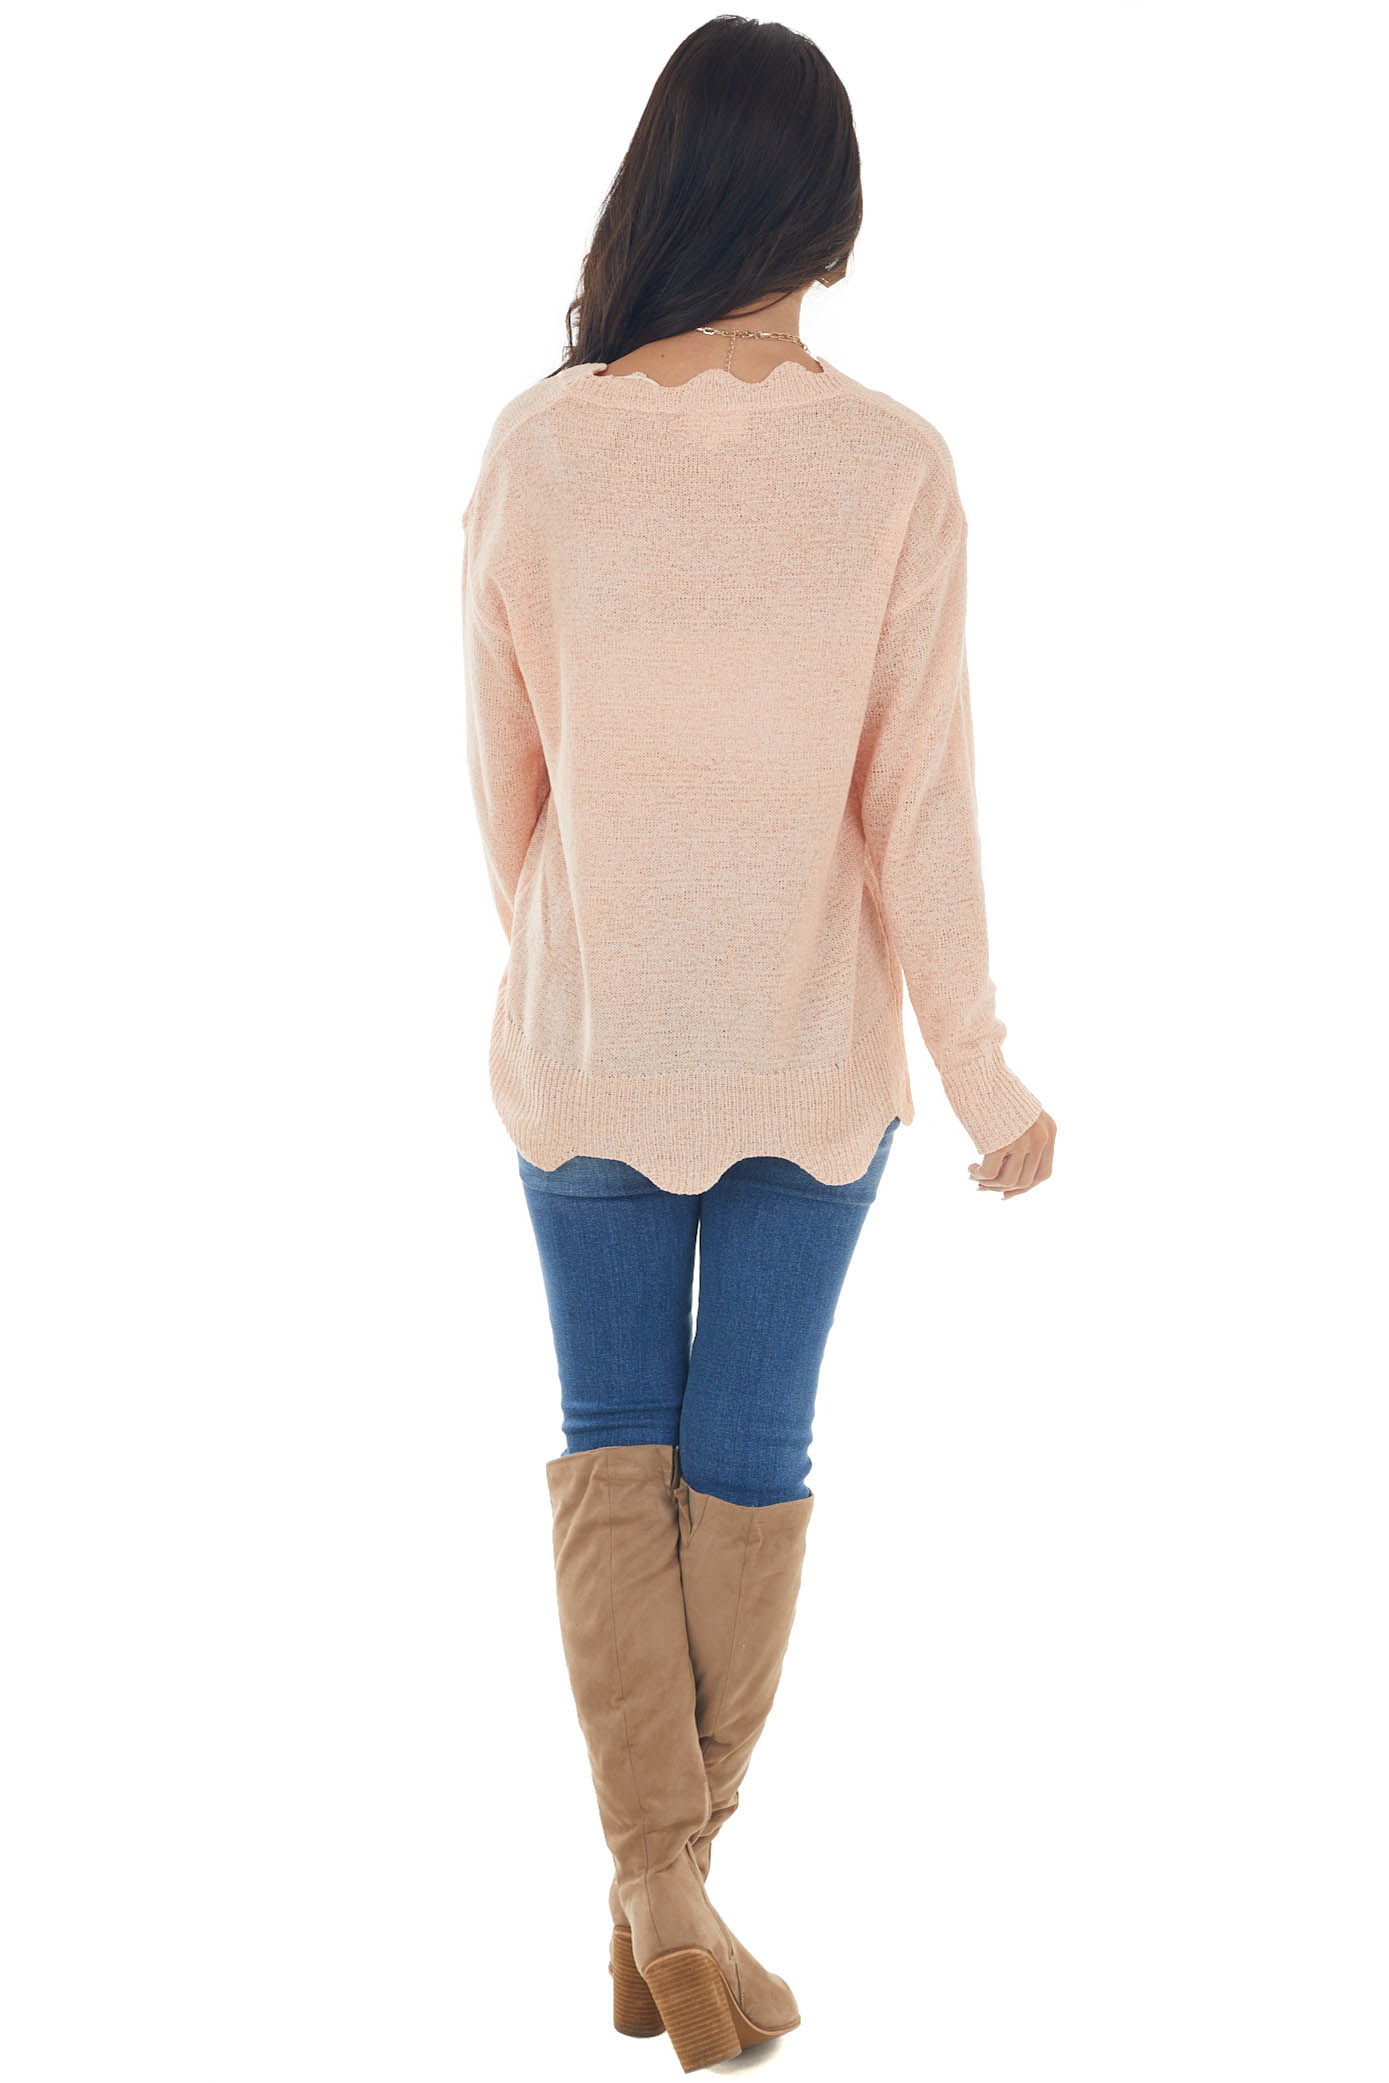 Peach V Neck Sweater with Scallop Details